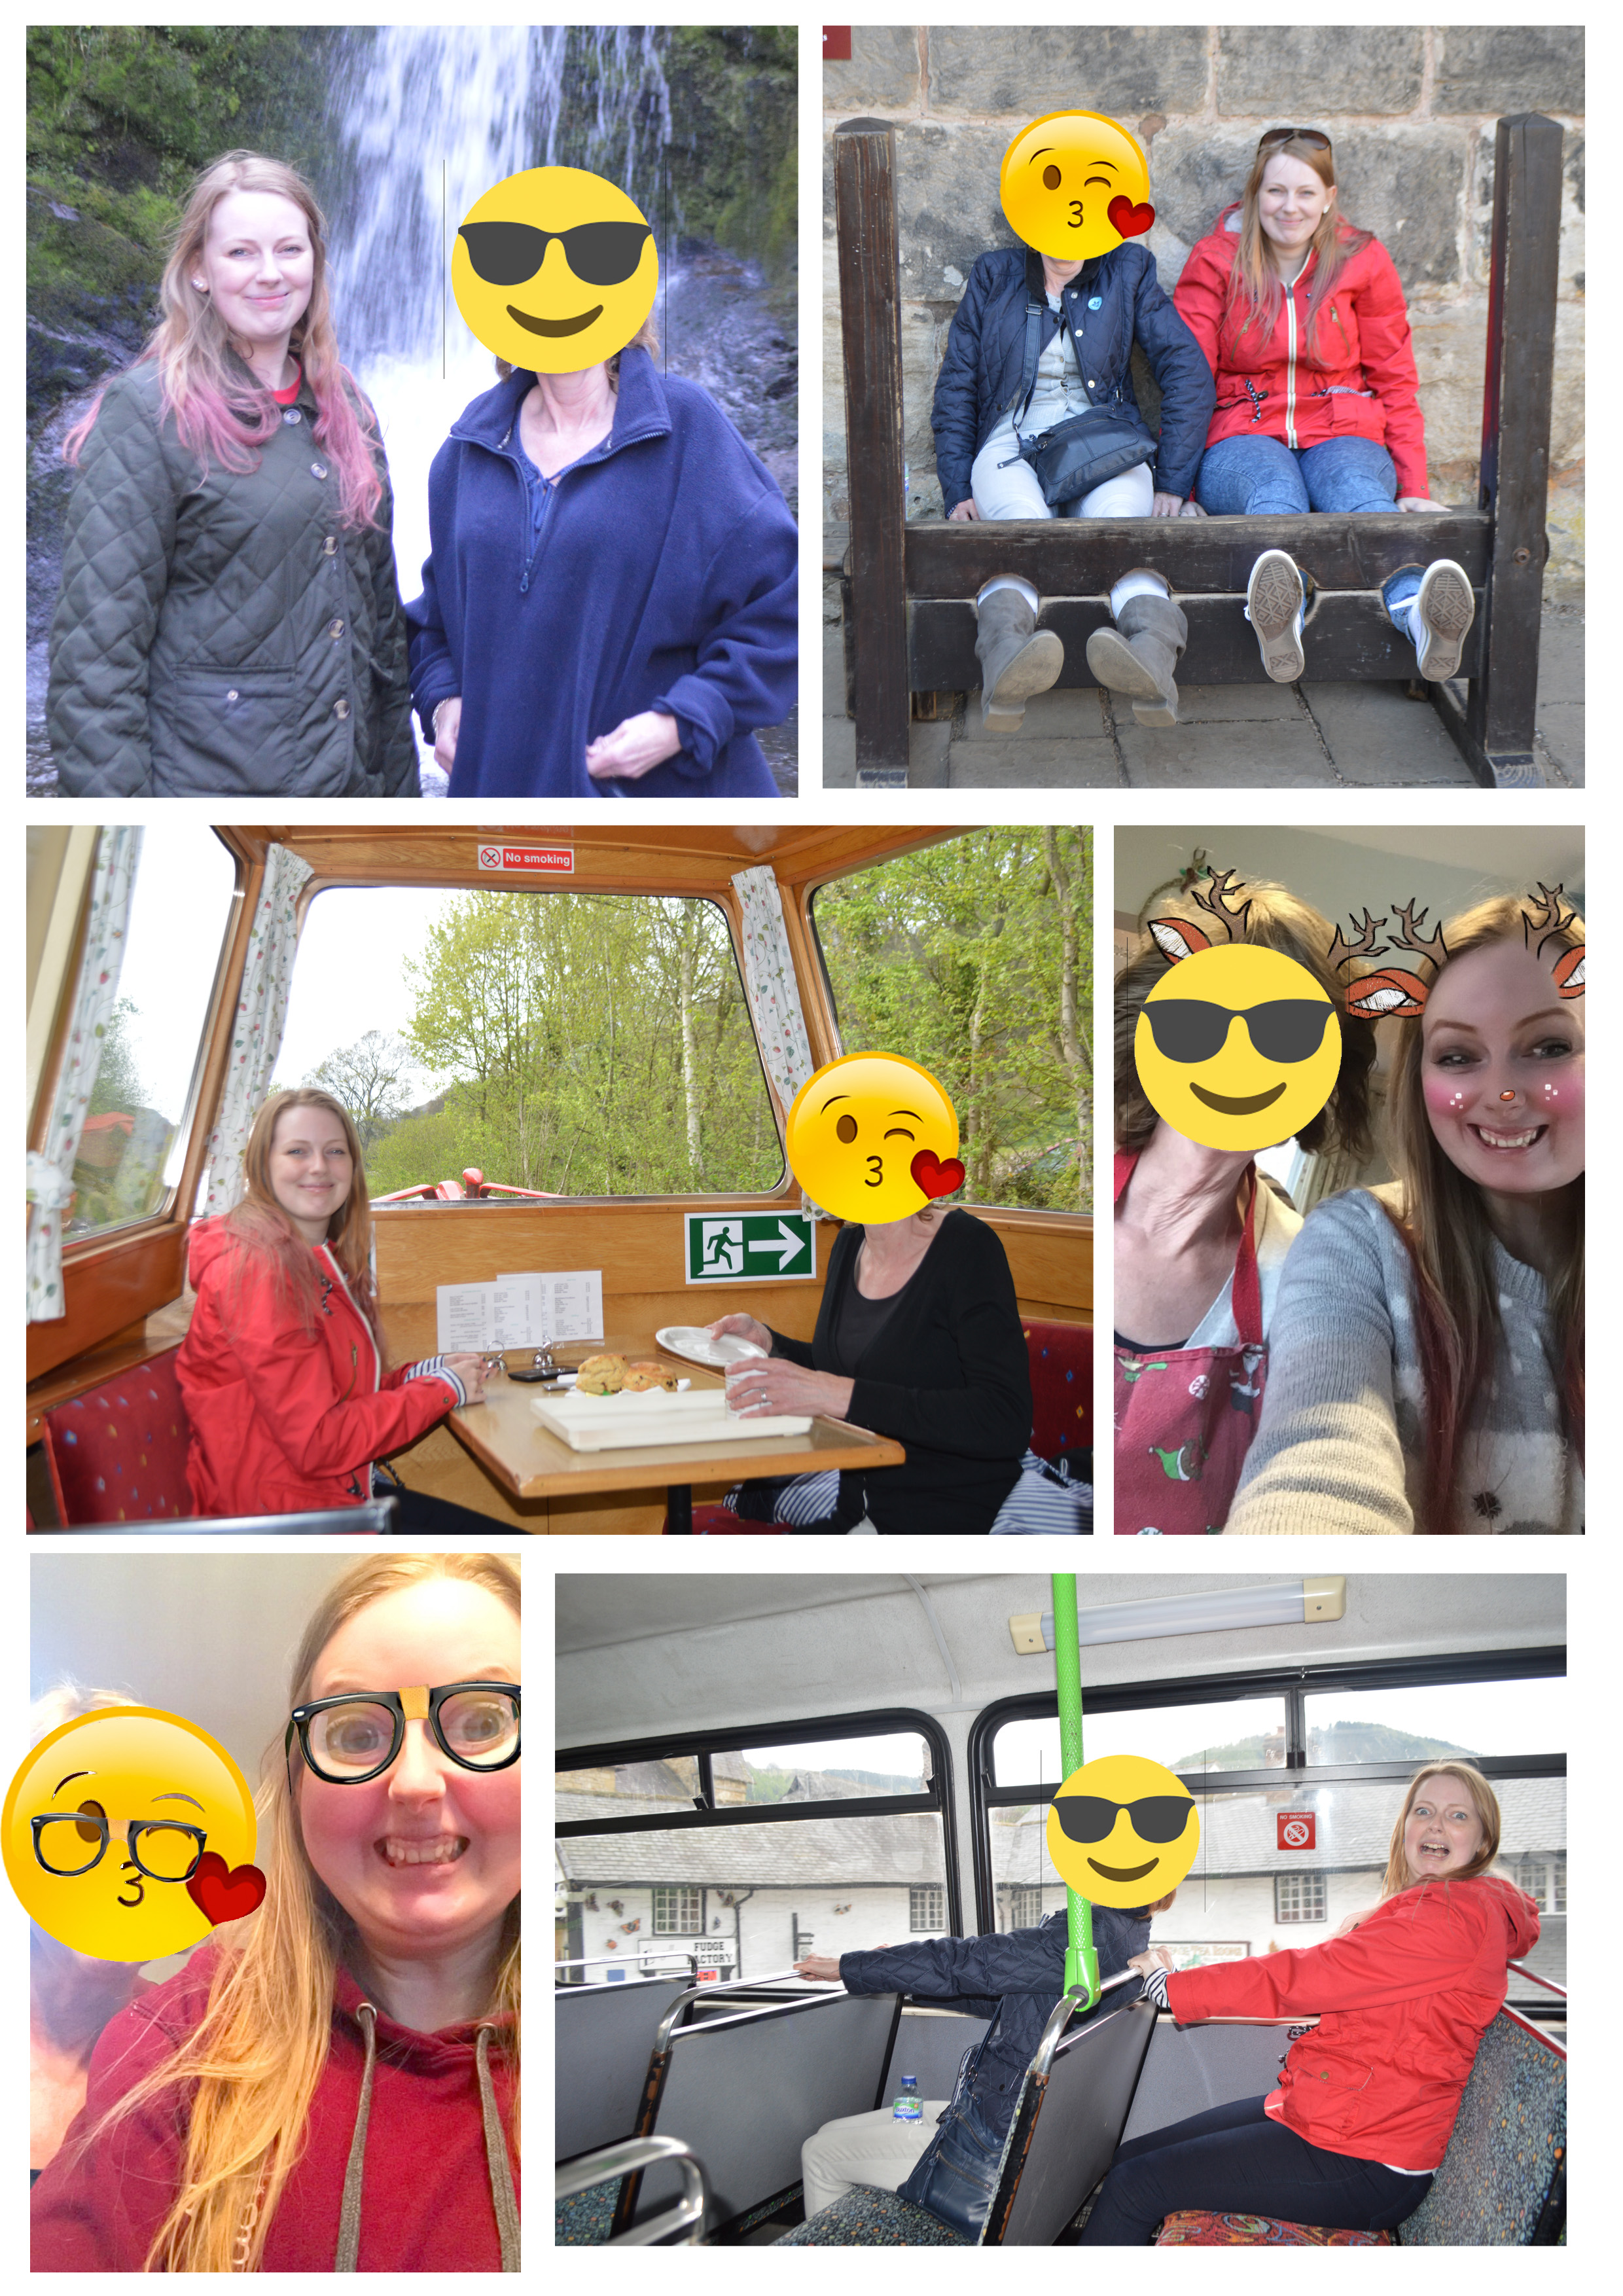 *FYI I don't  actually  have an emoji as a mother she just quite rightly doesn't want her photo all over my blog when she doesn't even have social media of her own.